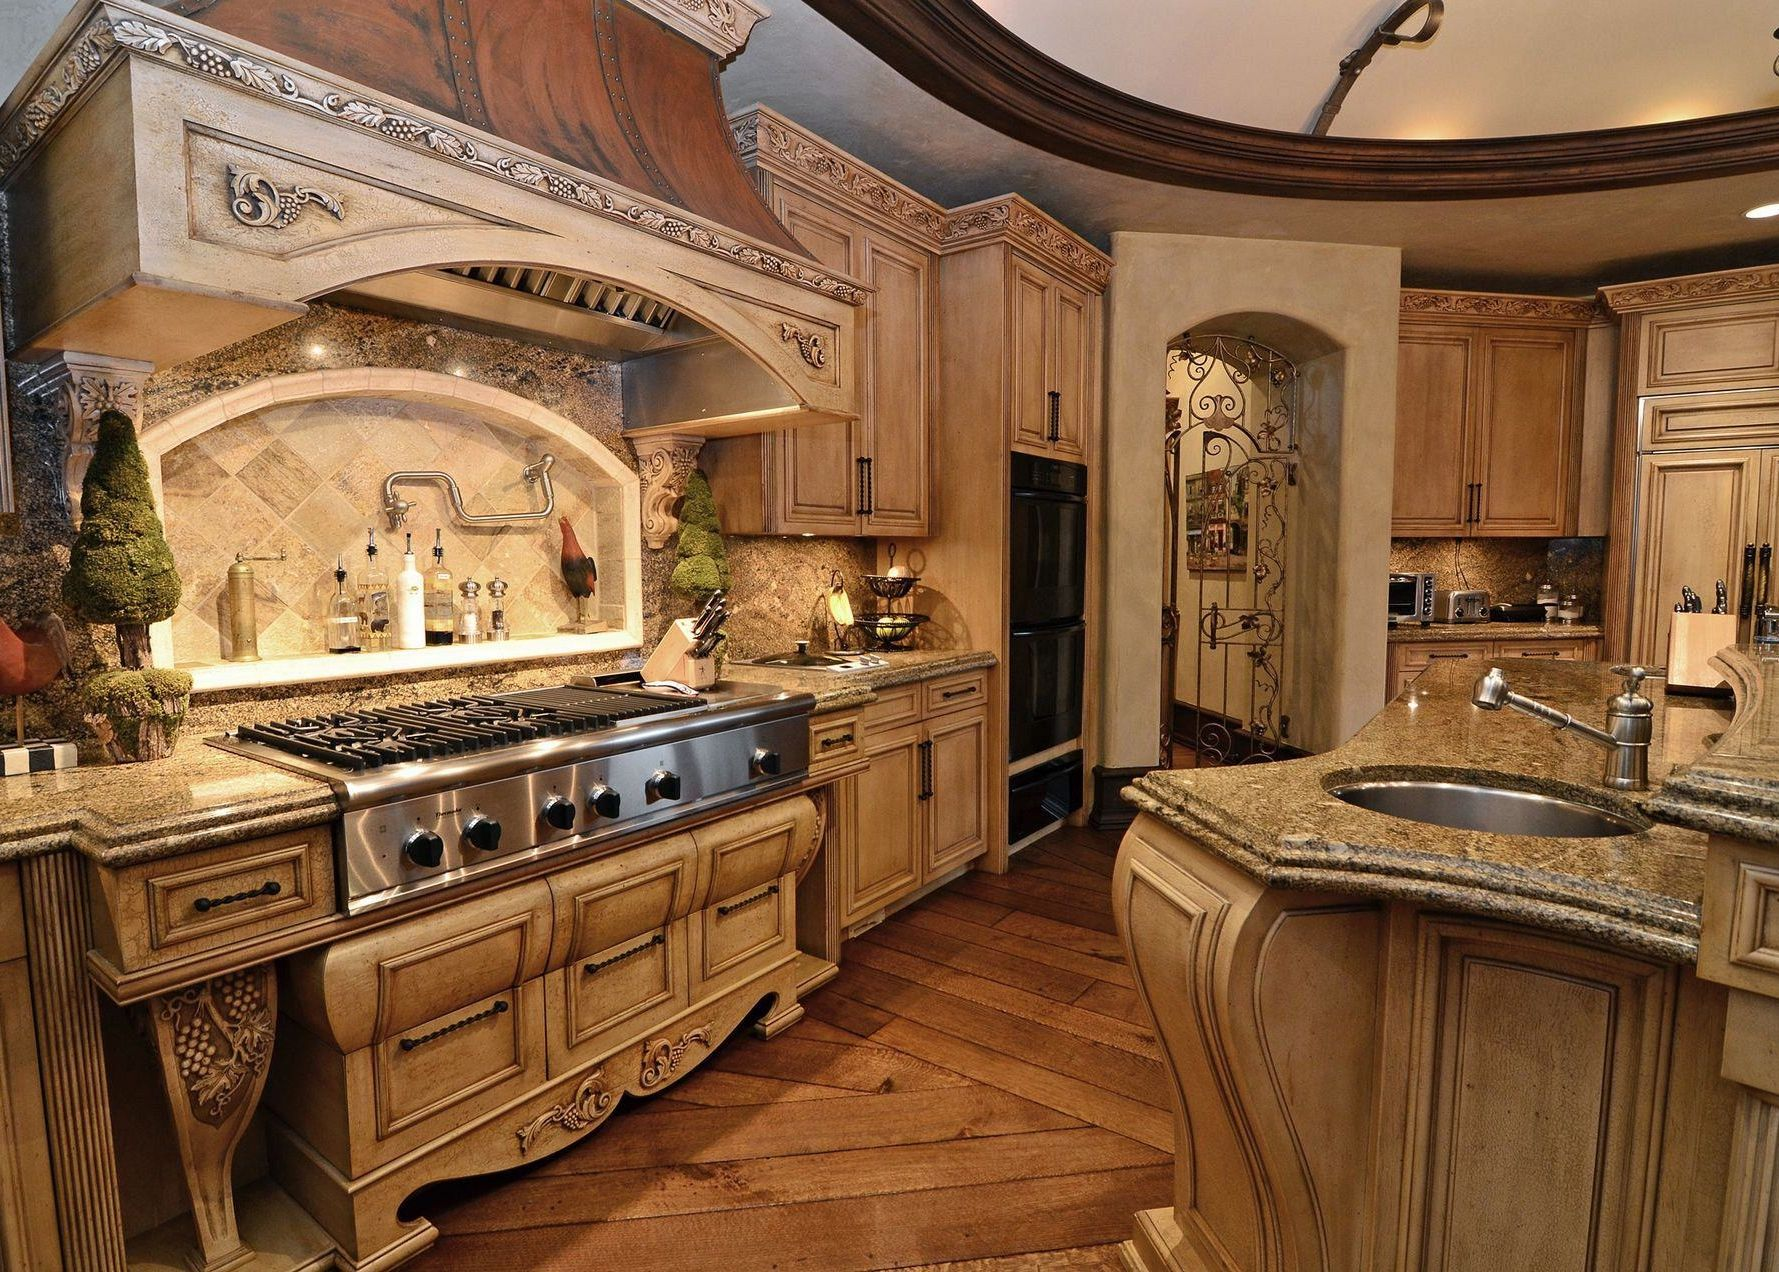 old world kitchens | Interior and Exterior Design Ideas | kitchens ...